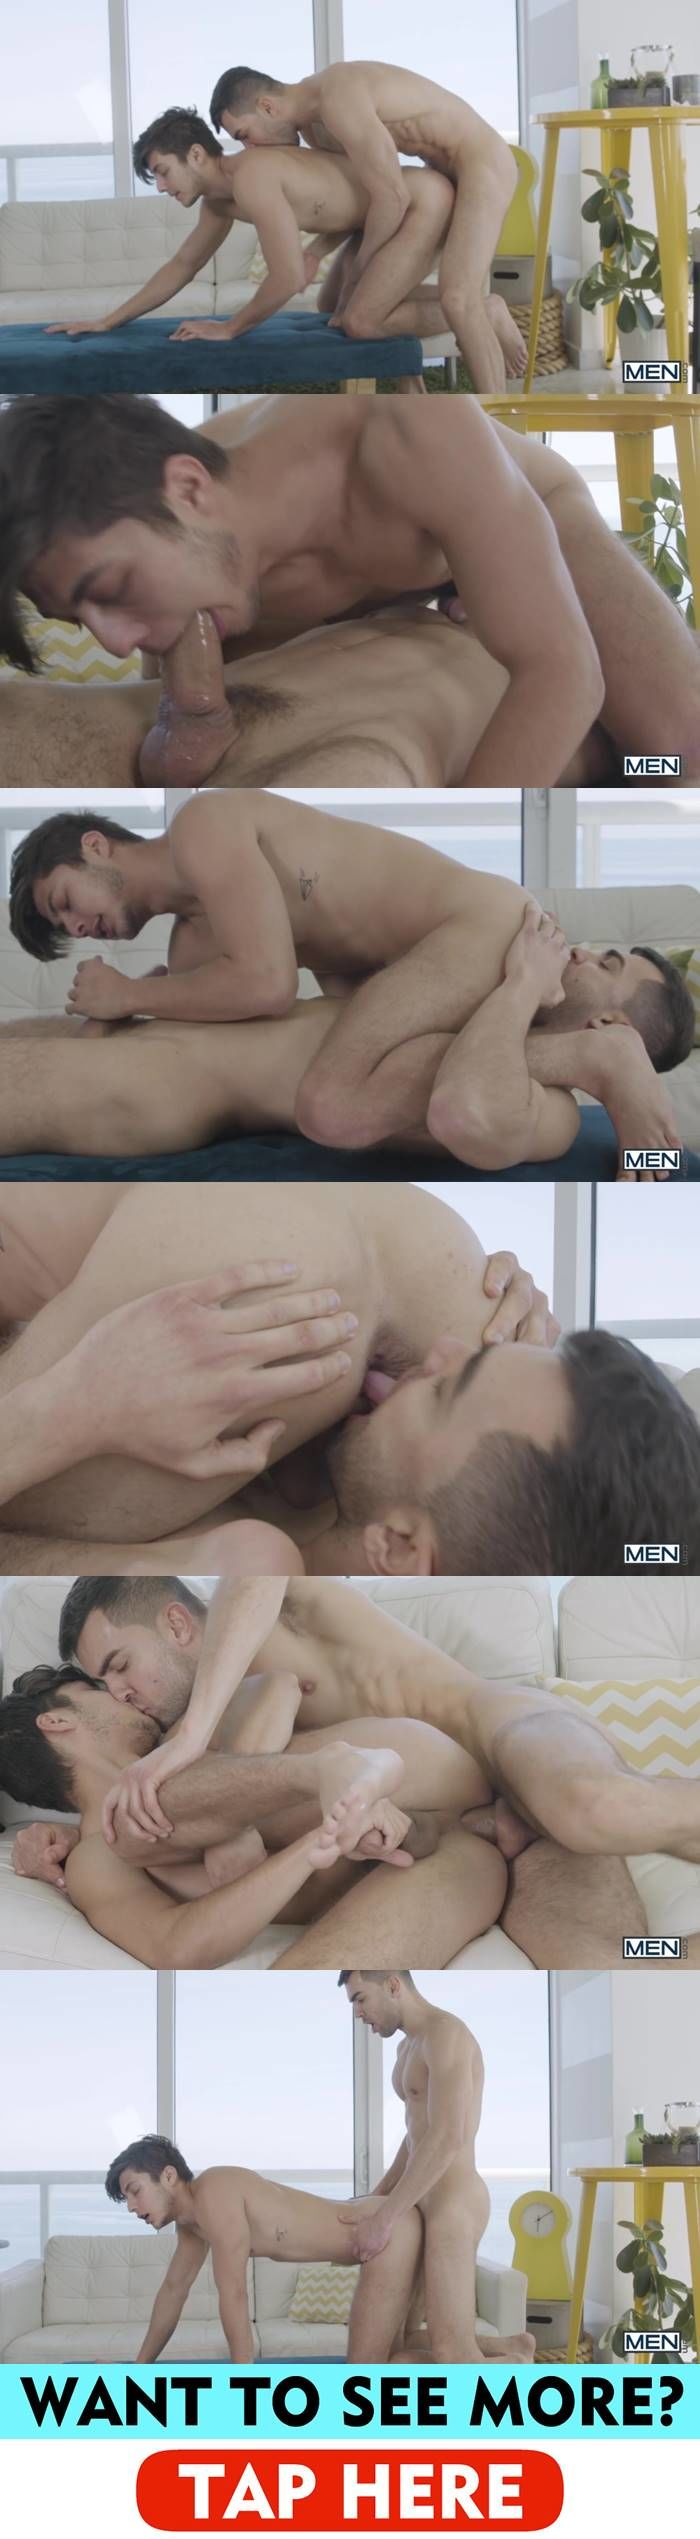 Latin Men: Part 3 - Angel Rivera & Alexander Muller